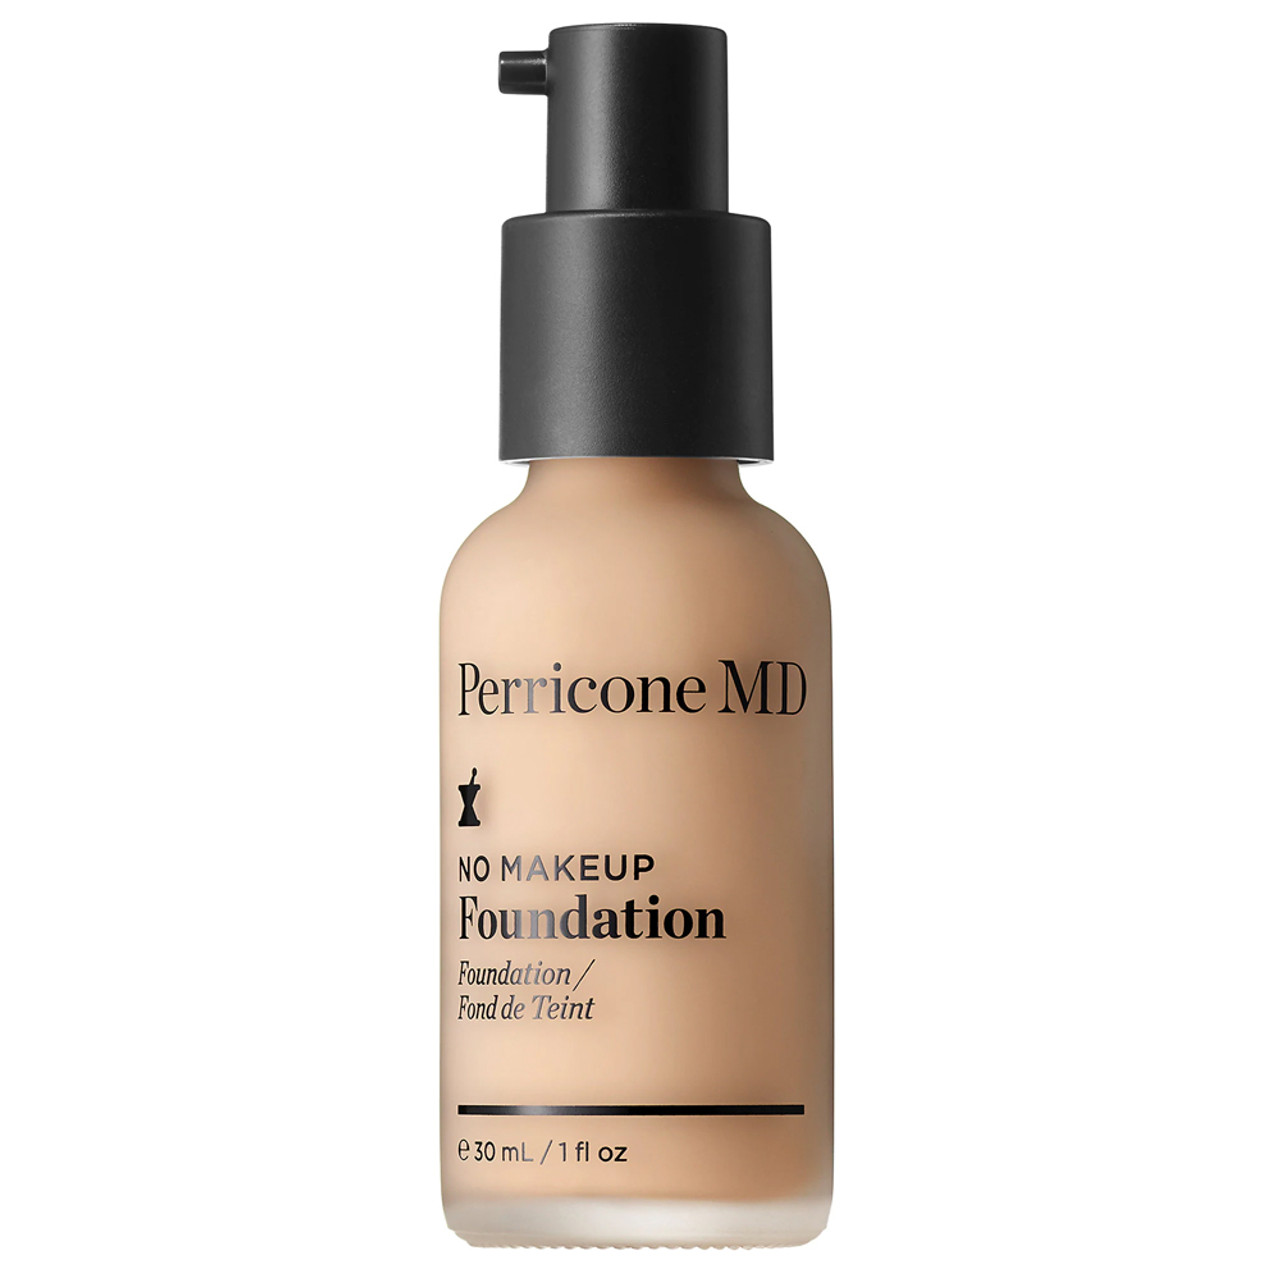 Perricone MD No Makeup Foundation Broad Spectrum SPF 20 Porcelain